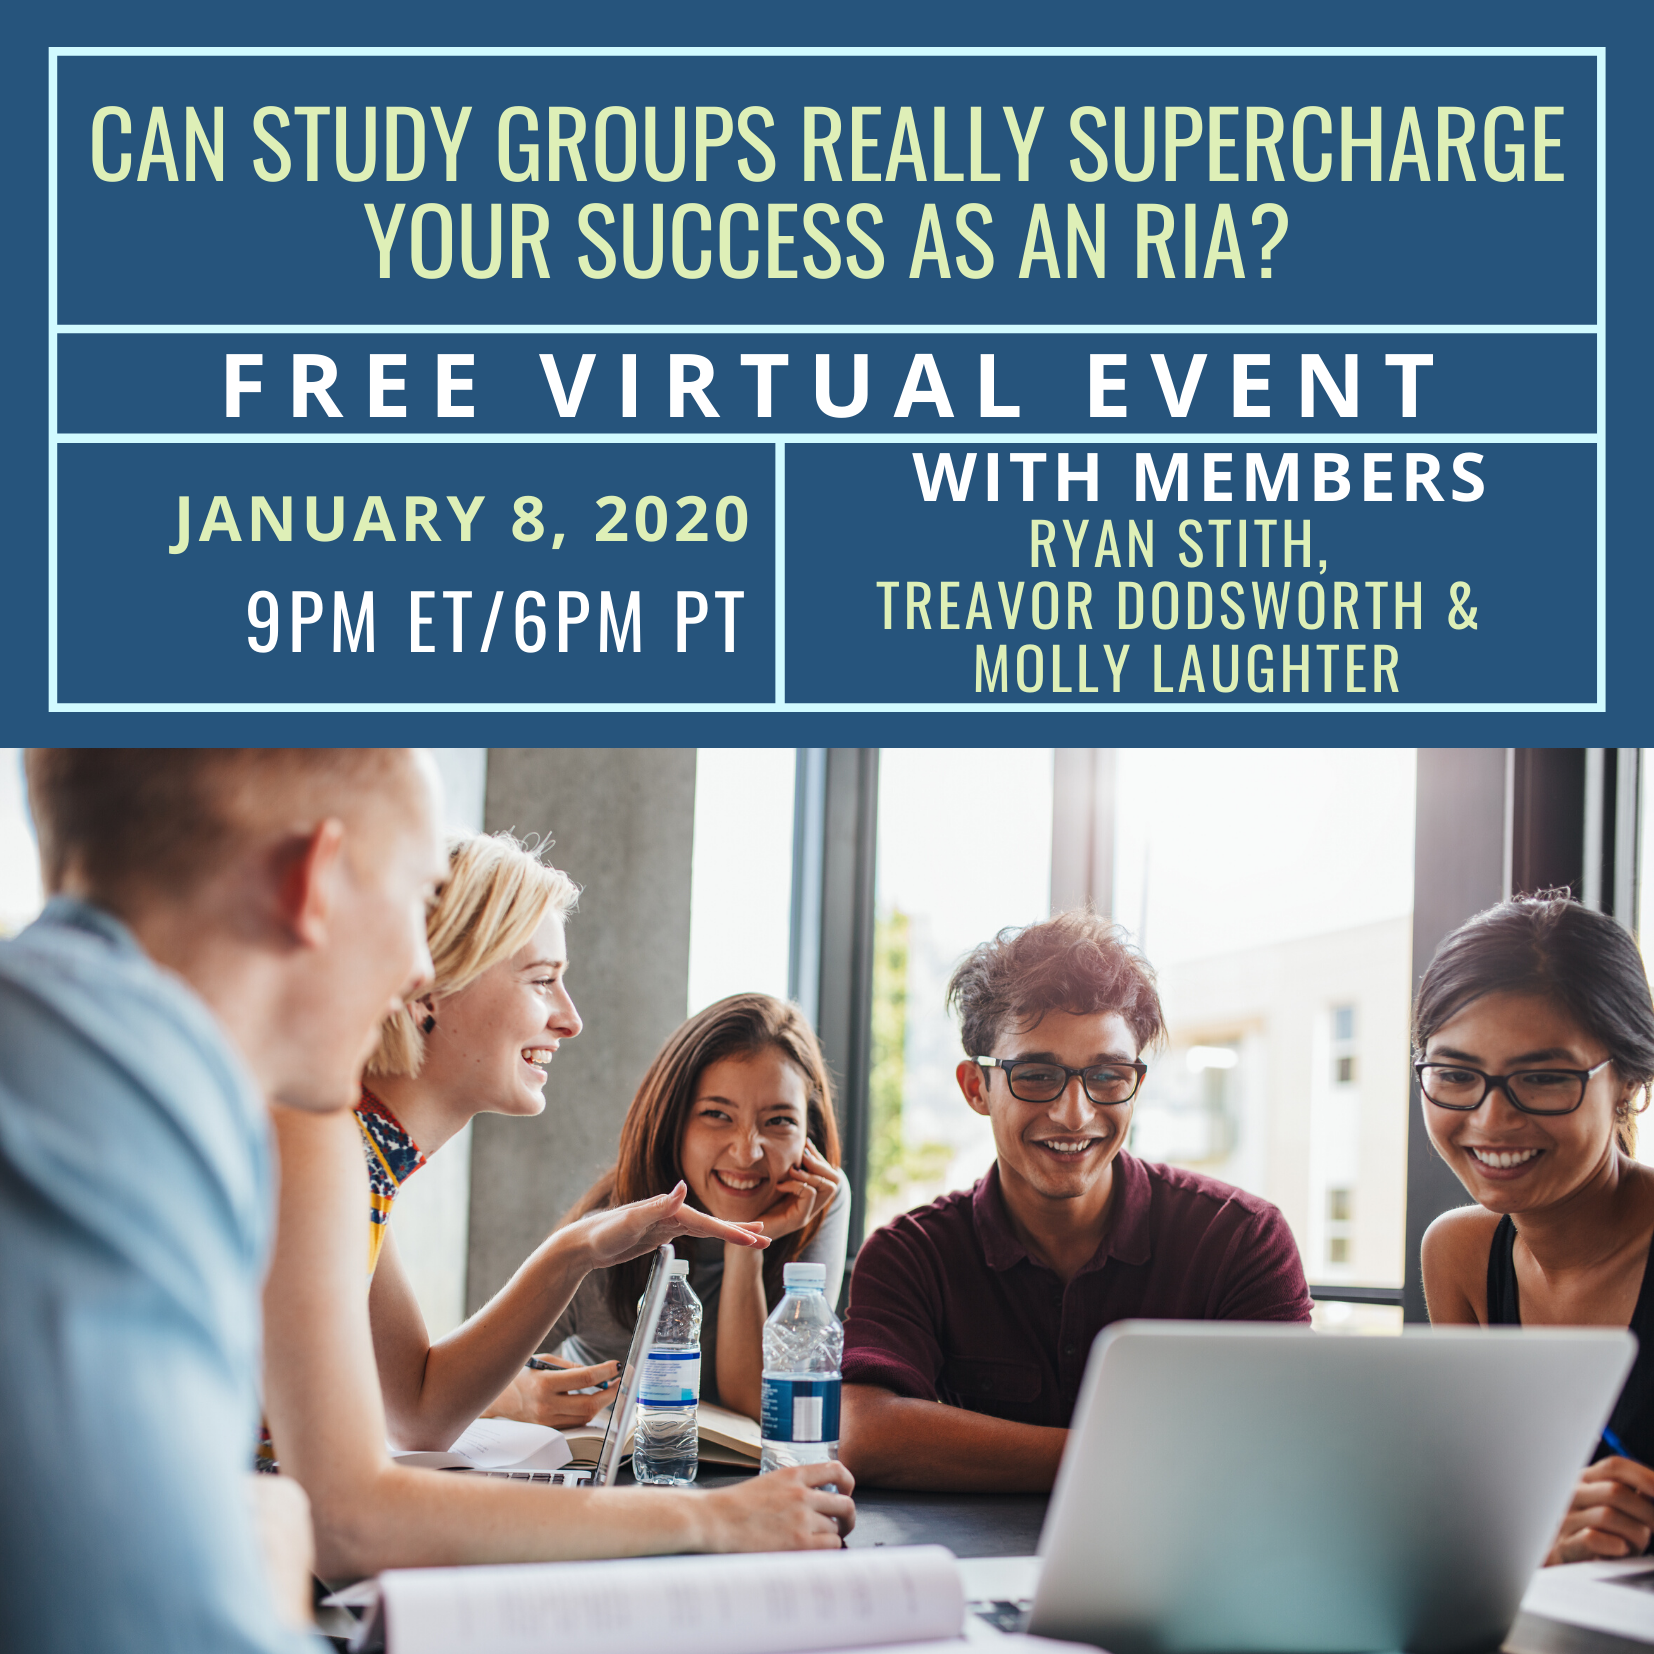 FREE Virtual Event: Can Study Groups Really Supercharge Your Success as an RIA?